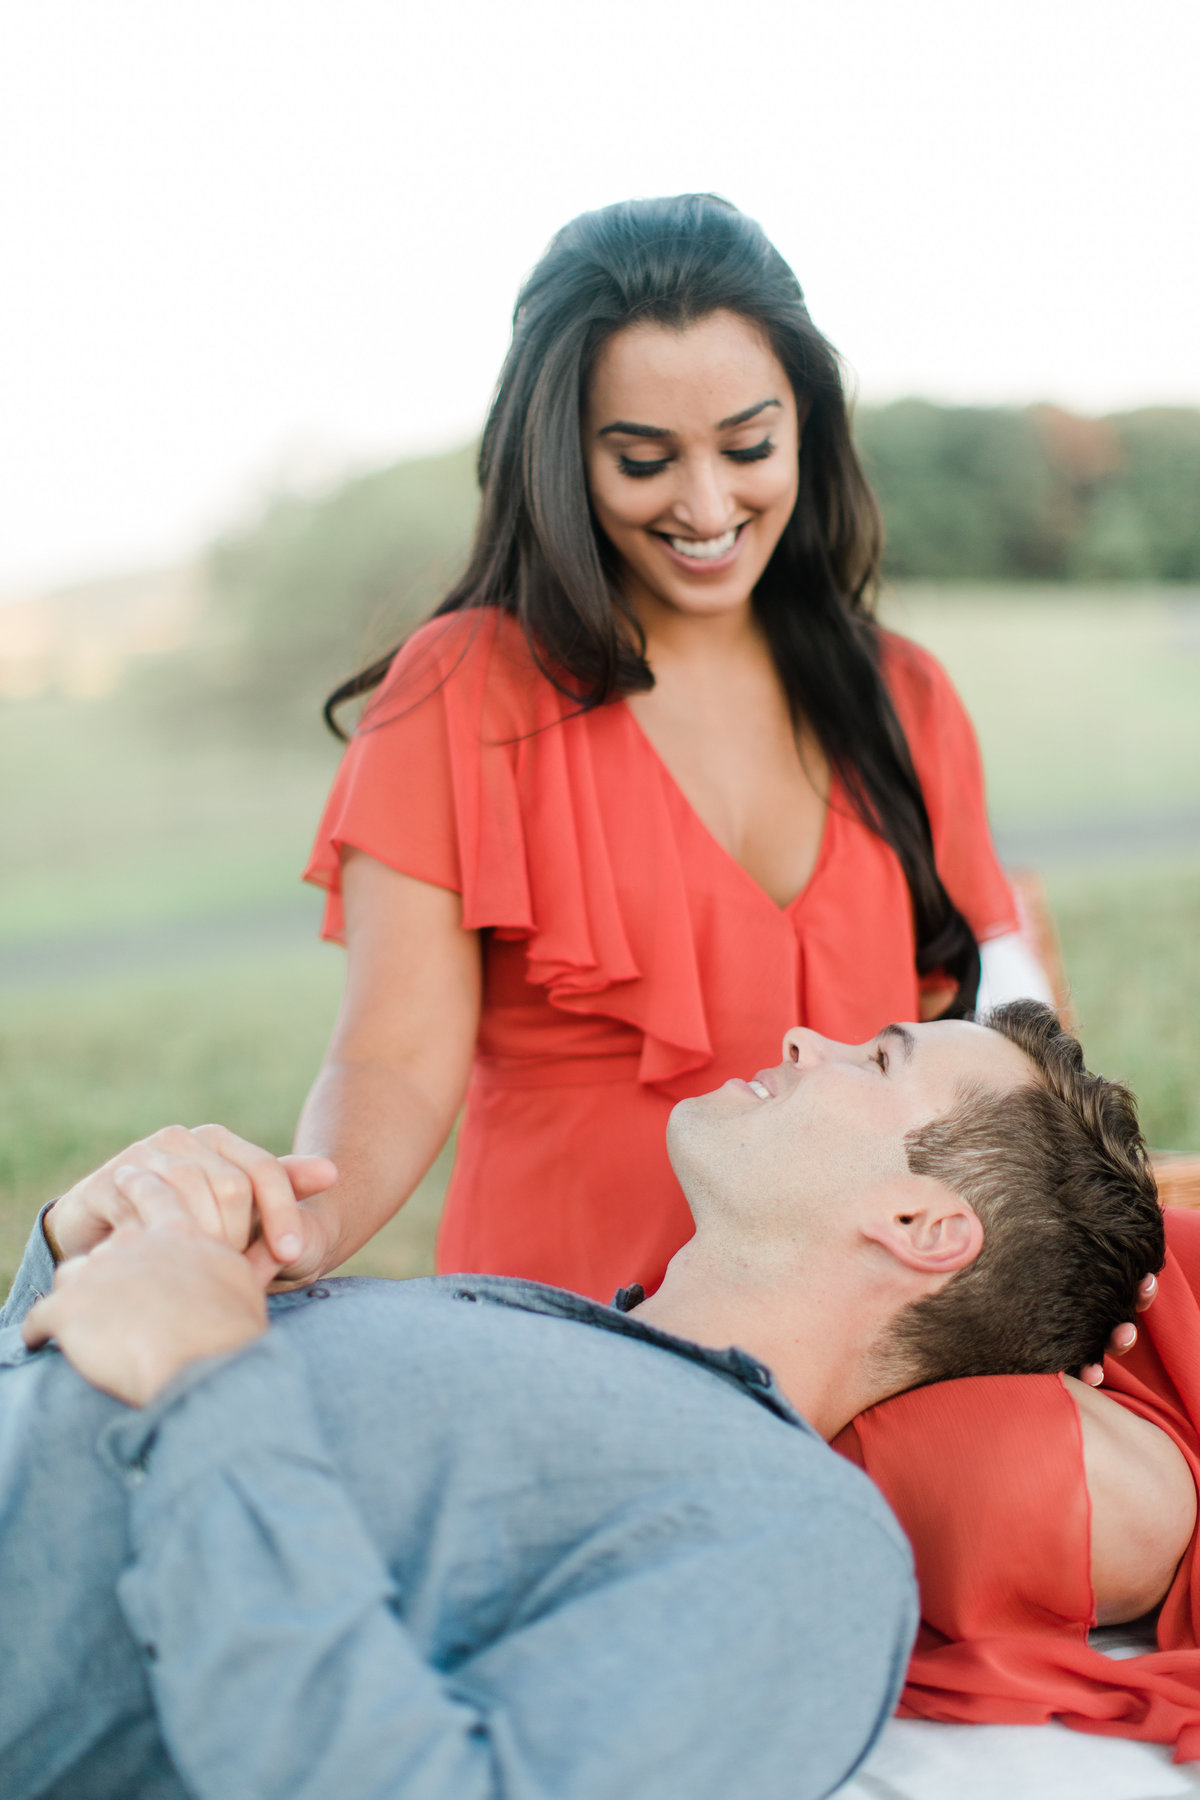 SkyMeadowsPark_Virginia_Engagement_Session_AngelikaJohnsPhotography-0389